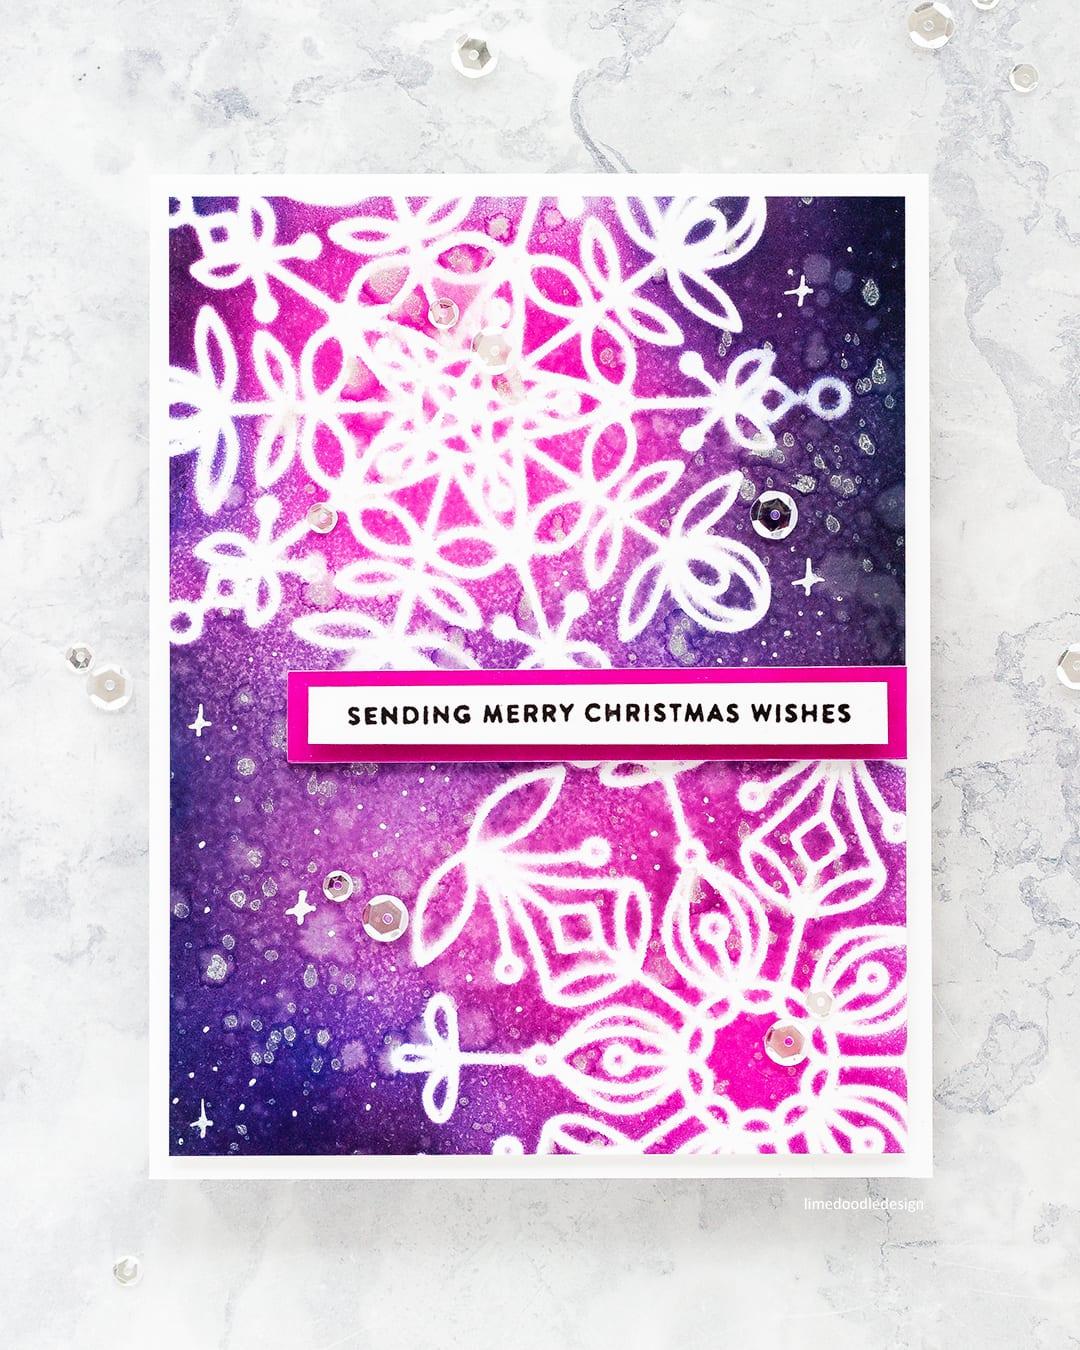 Frozen Fractals handmade Christmas card by Debby Hughes using the new Holiday release from Simon Says Stamp. Find out more here: http://limedoodledesign.com/2017/10/simon-says-stamp-holiday-release-blog-hop/